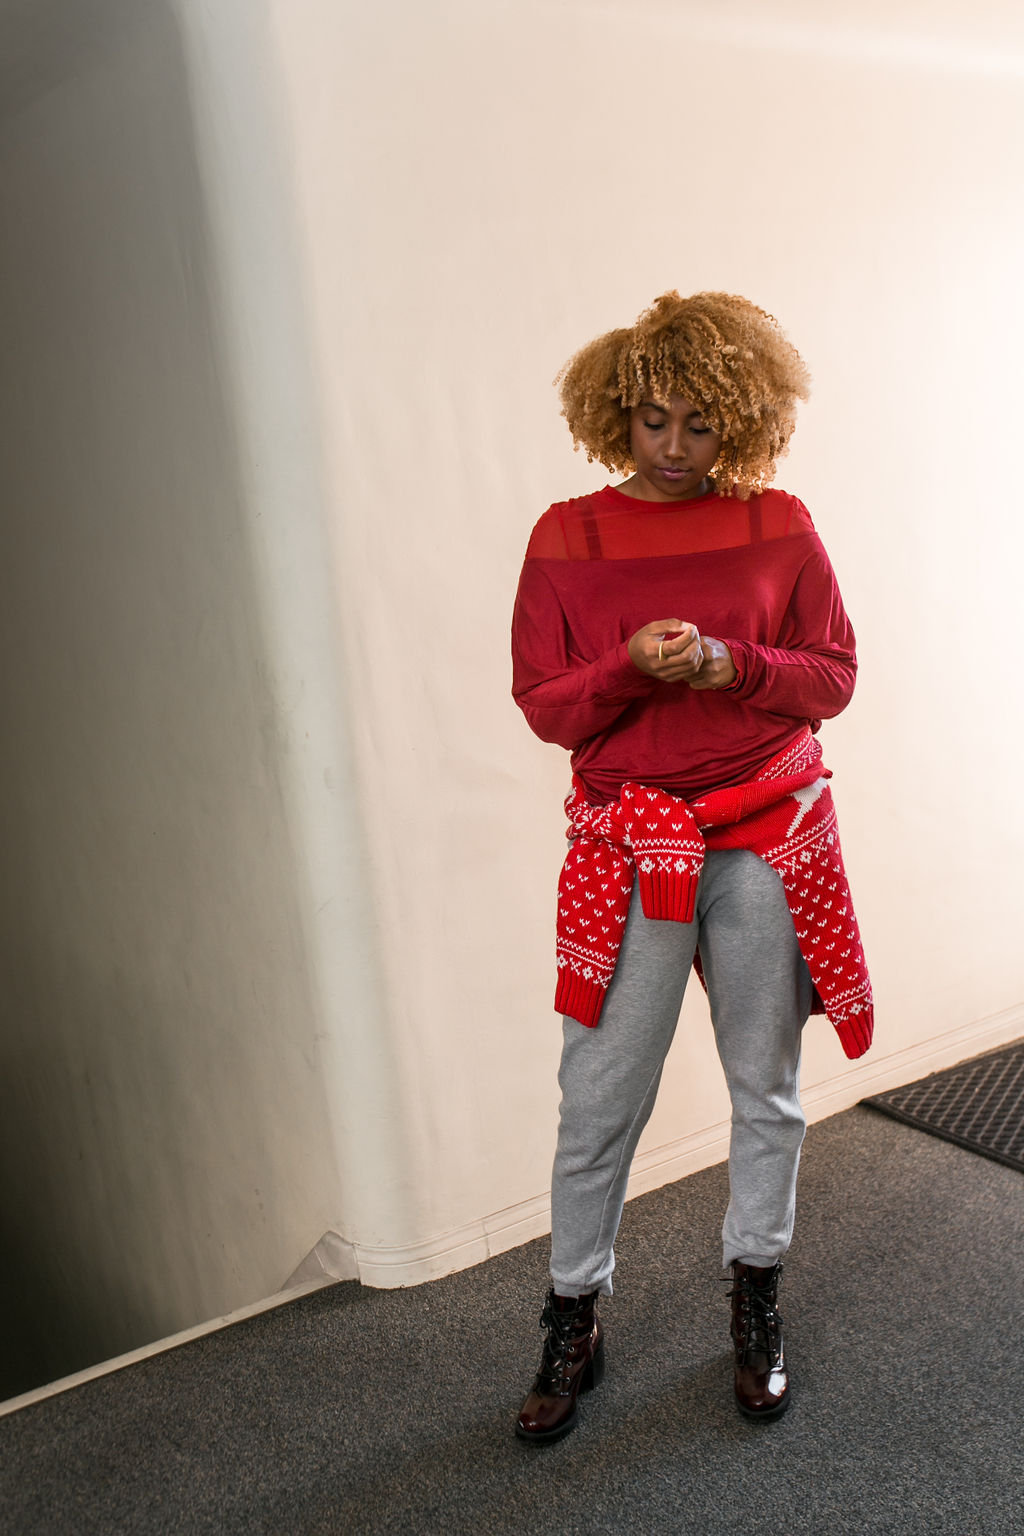 RSEE-LCM-Liveclothesminded-xmmtt-longbeach-2508-ugly christmas sweater-christmas-outfit